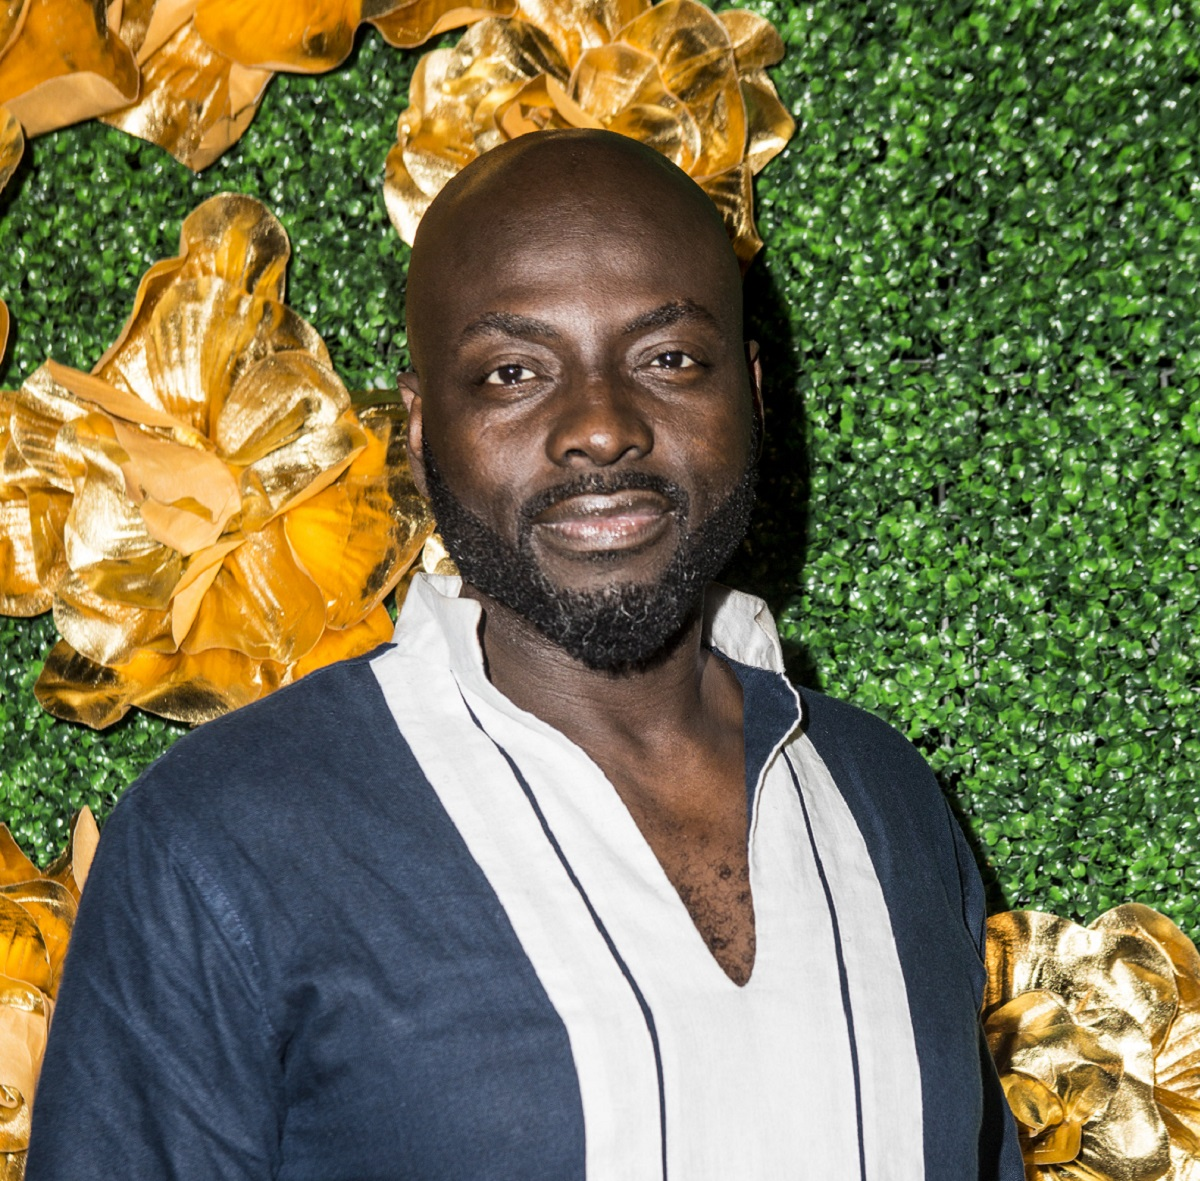 Dr. Michael K. Obeng appeared on '90 Day Fiancé' with Angela Deem